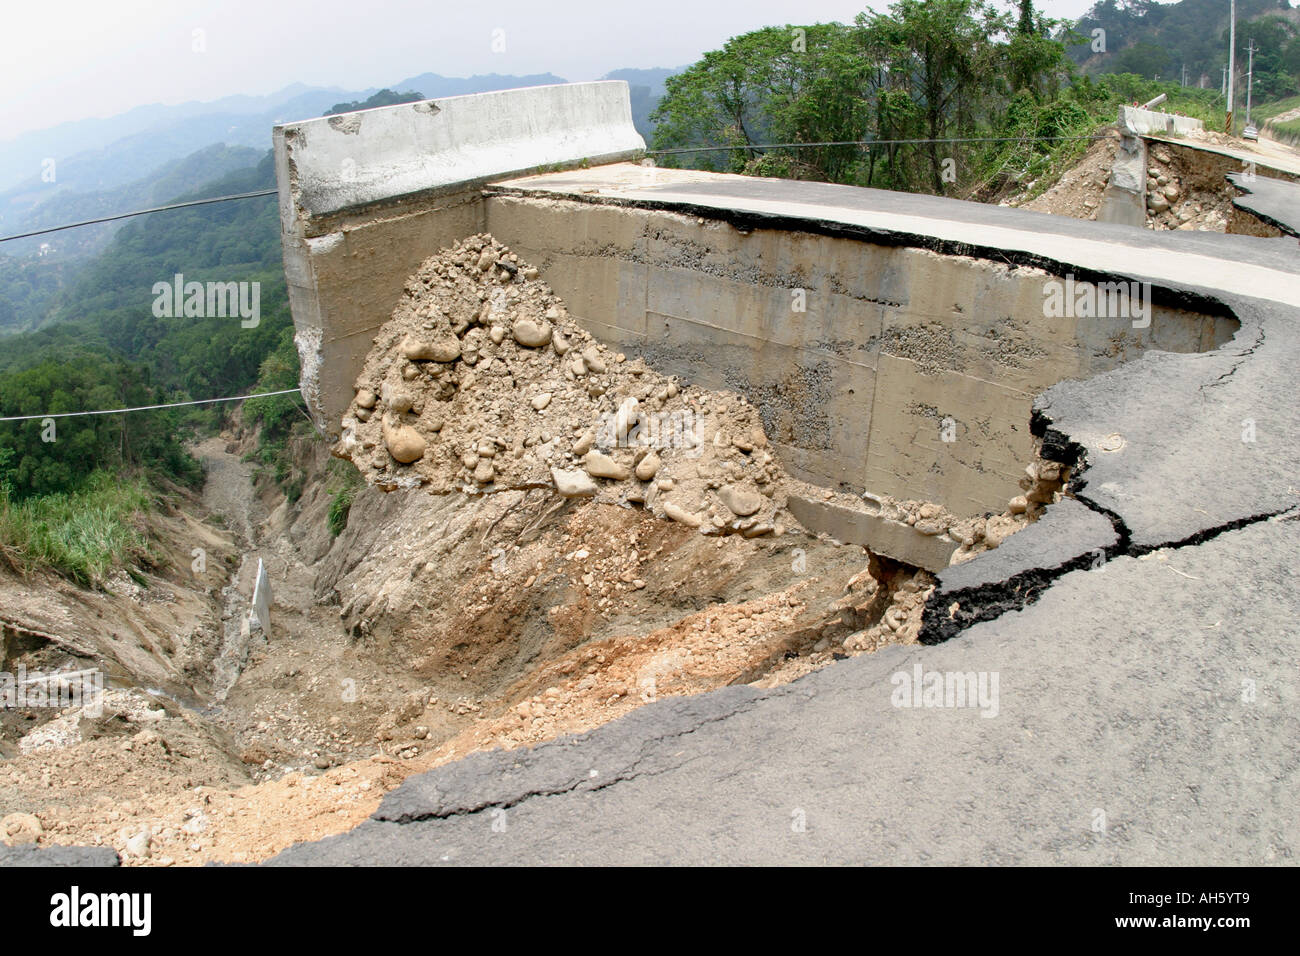 Road collapse - Stock Image